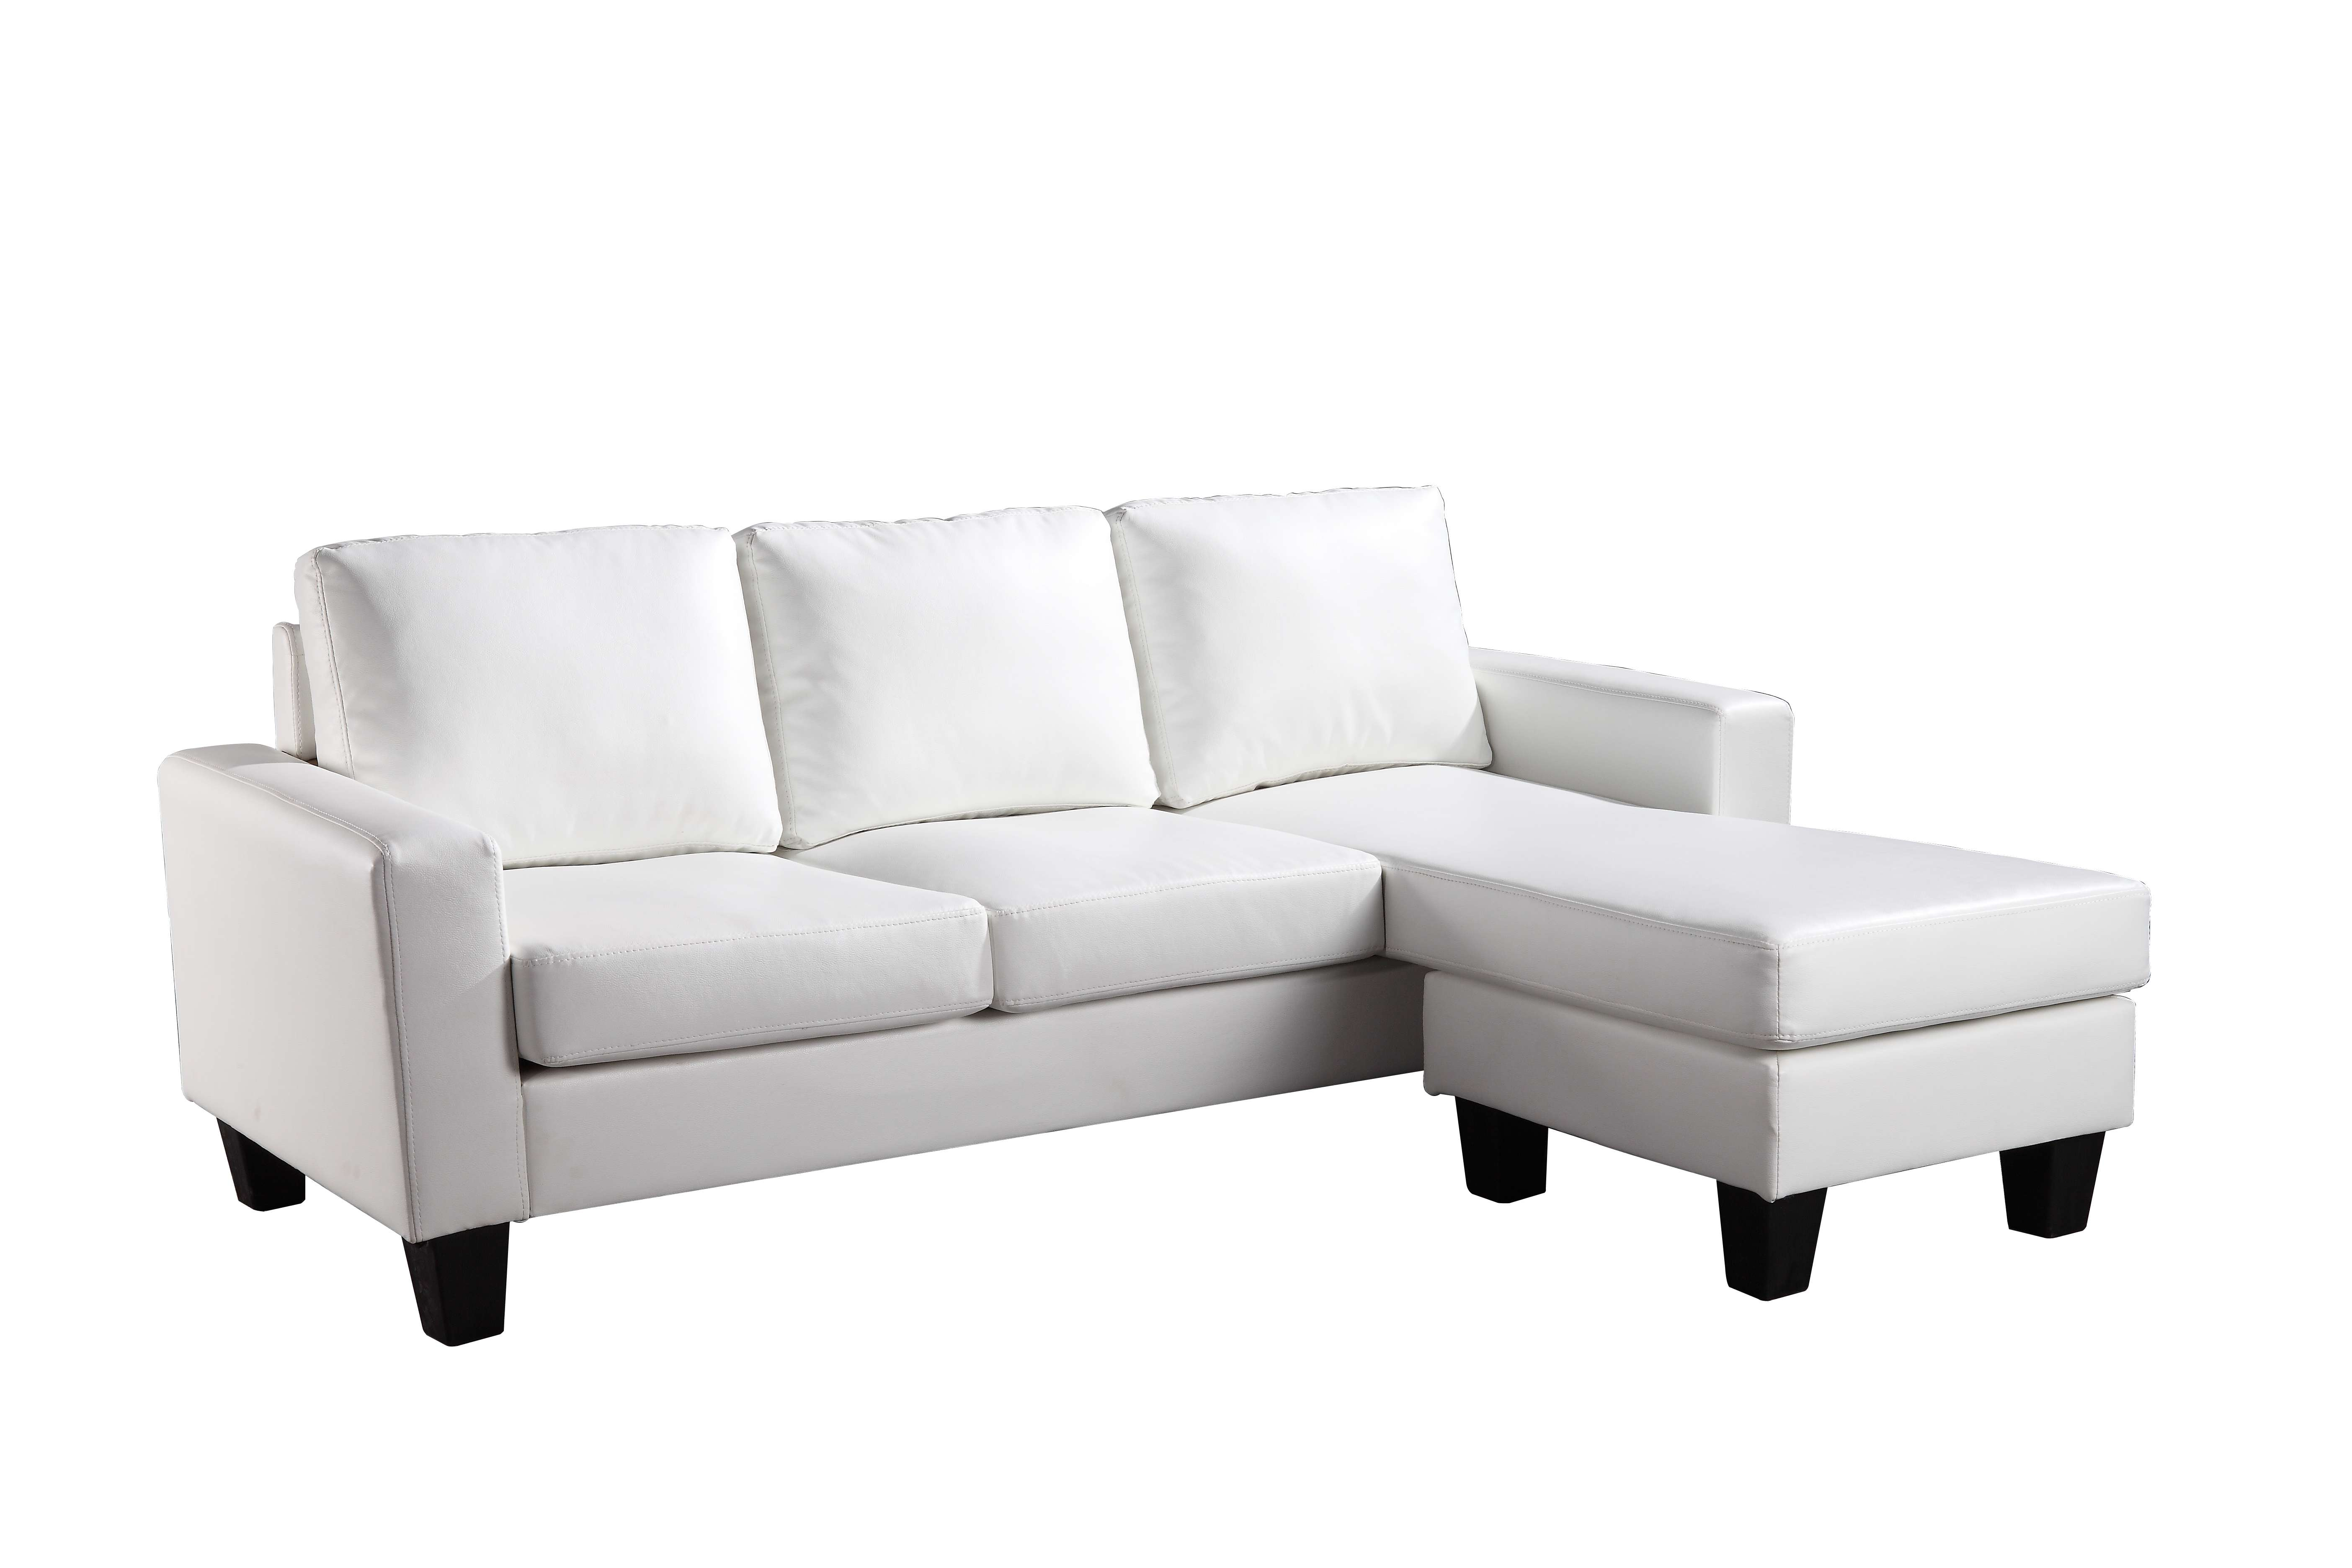 Outstanding Glory White Faux Leather Sofa Chaise Reviews Goedekers Com Cjindustries Chair Design For Home Cjindustriesco